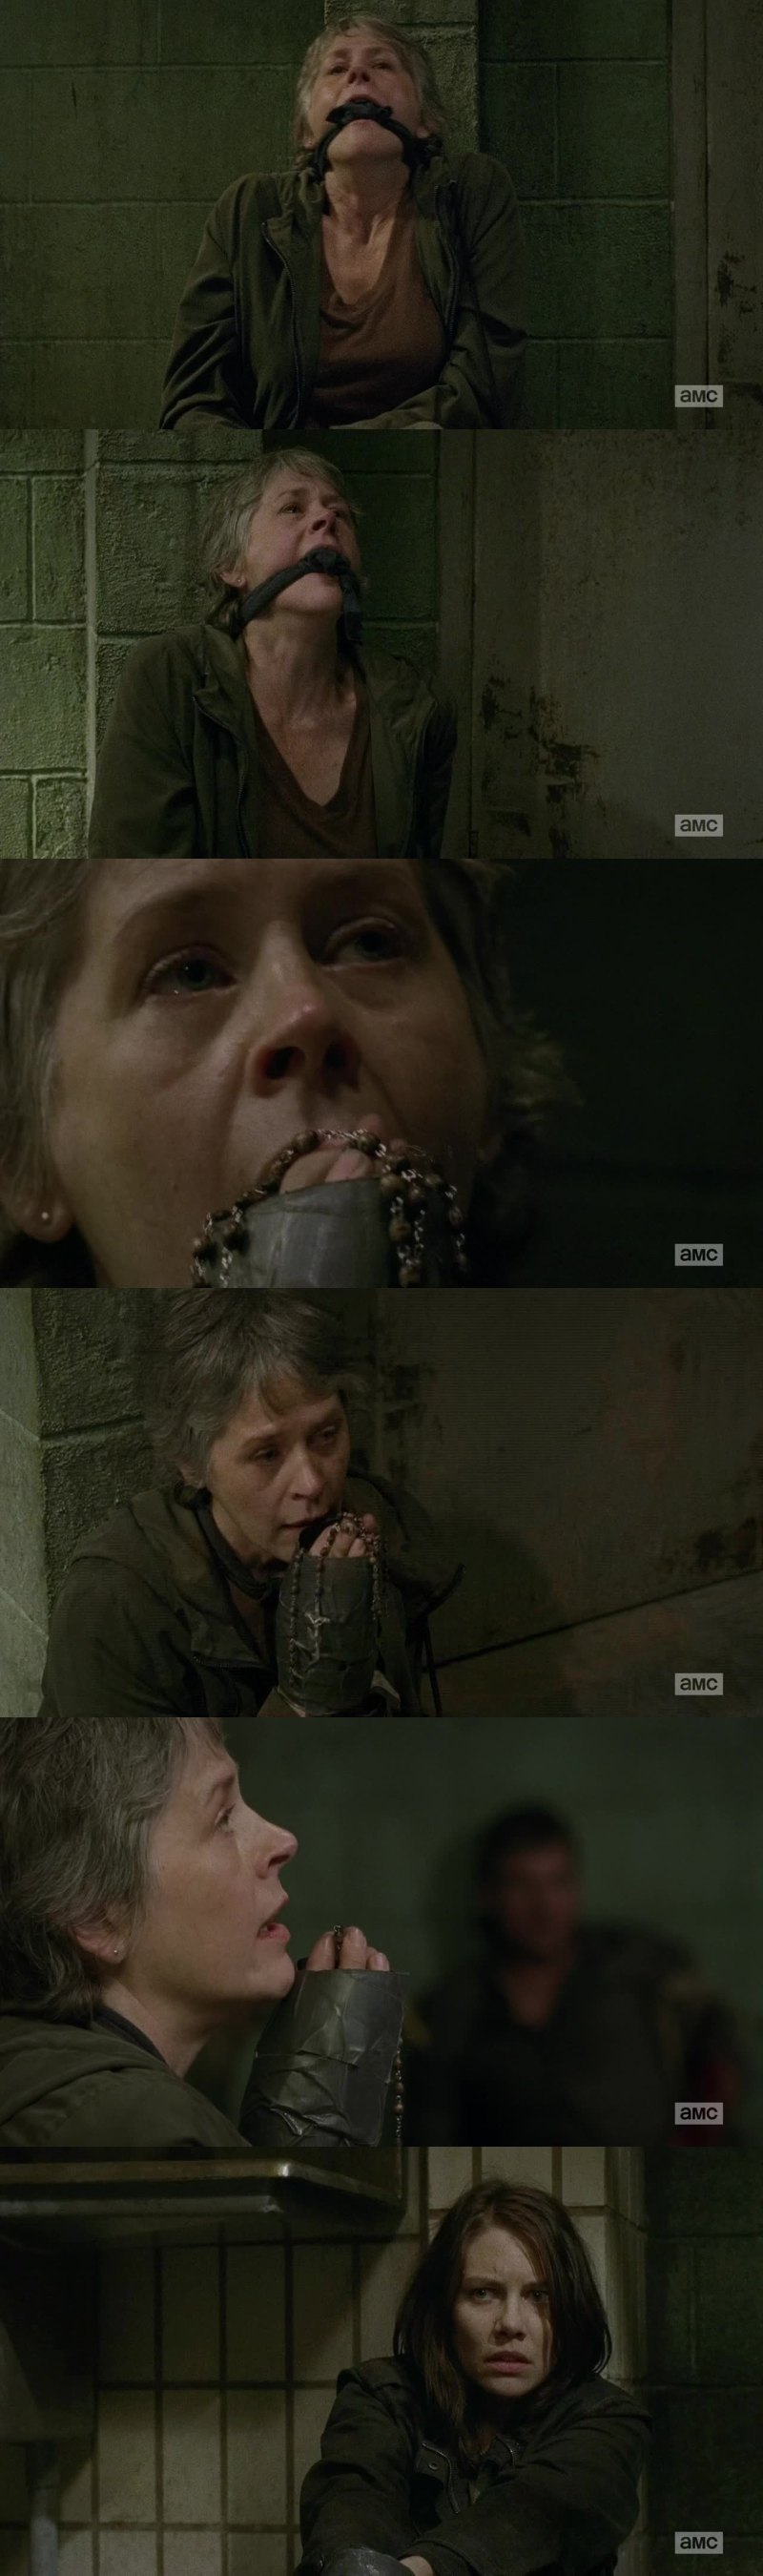 Maggie was like : what the fuck Carol, are you high? 😂😂